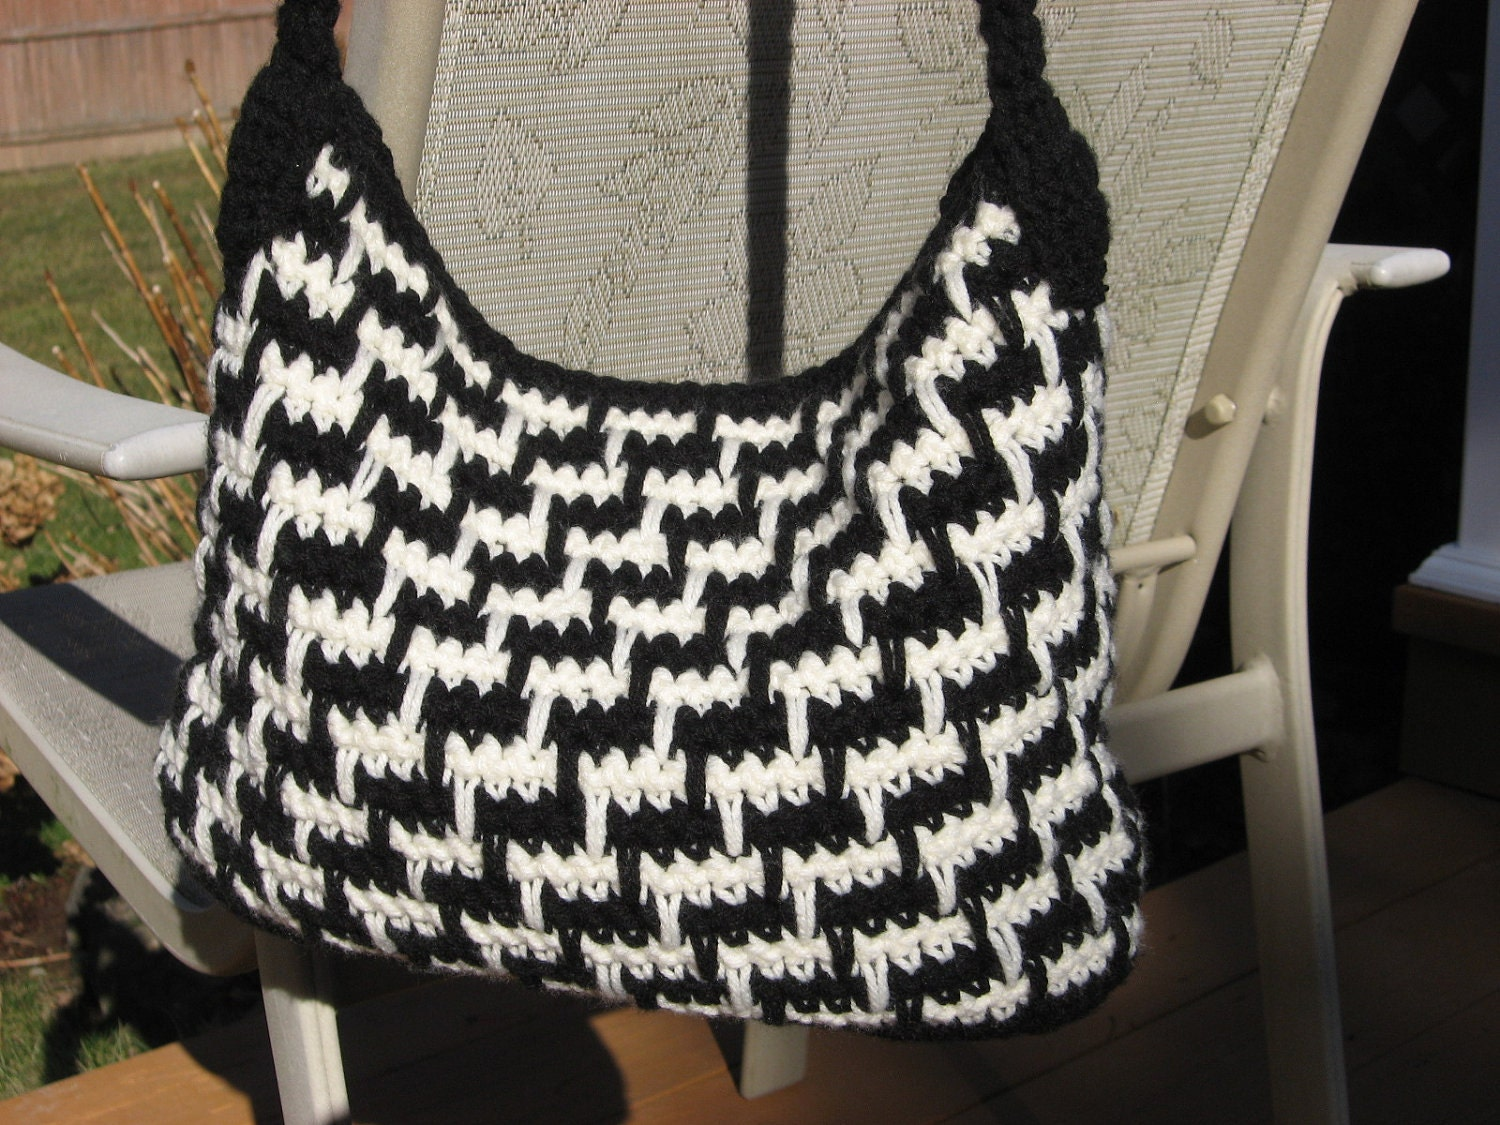 Crochet Handbag Pattern : Steppin Out Bag. Crochet Pattern Pdf Instant by nutsaboutknitting